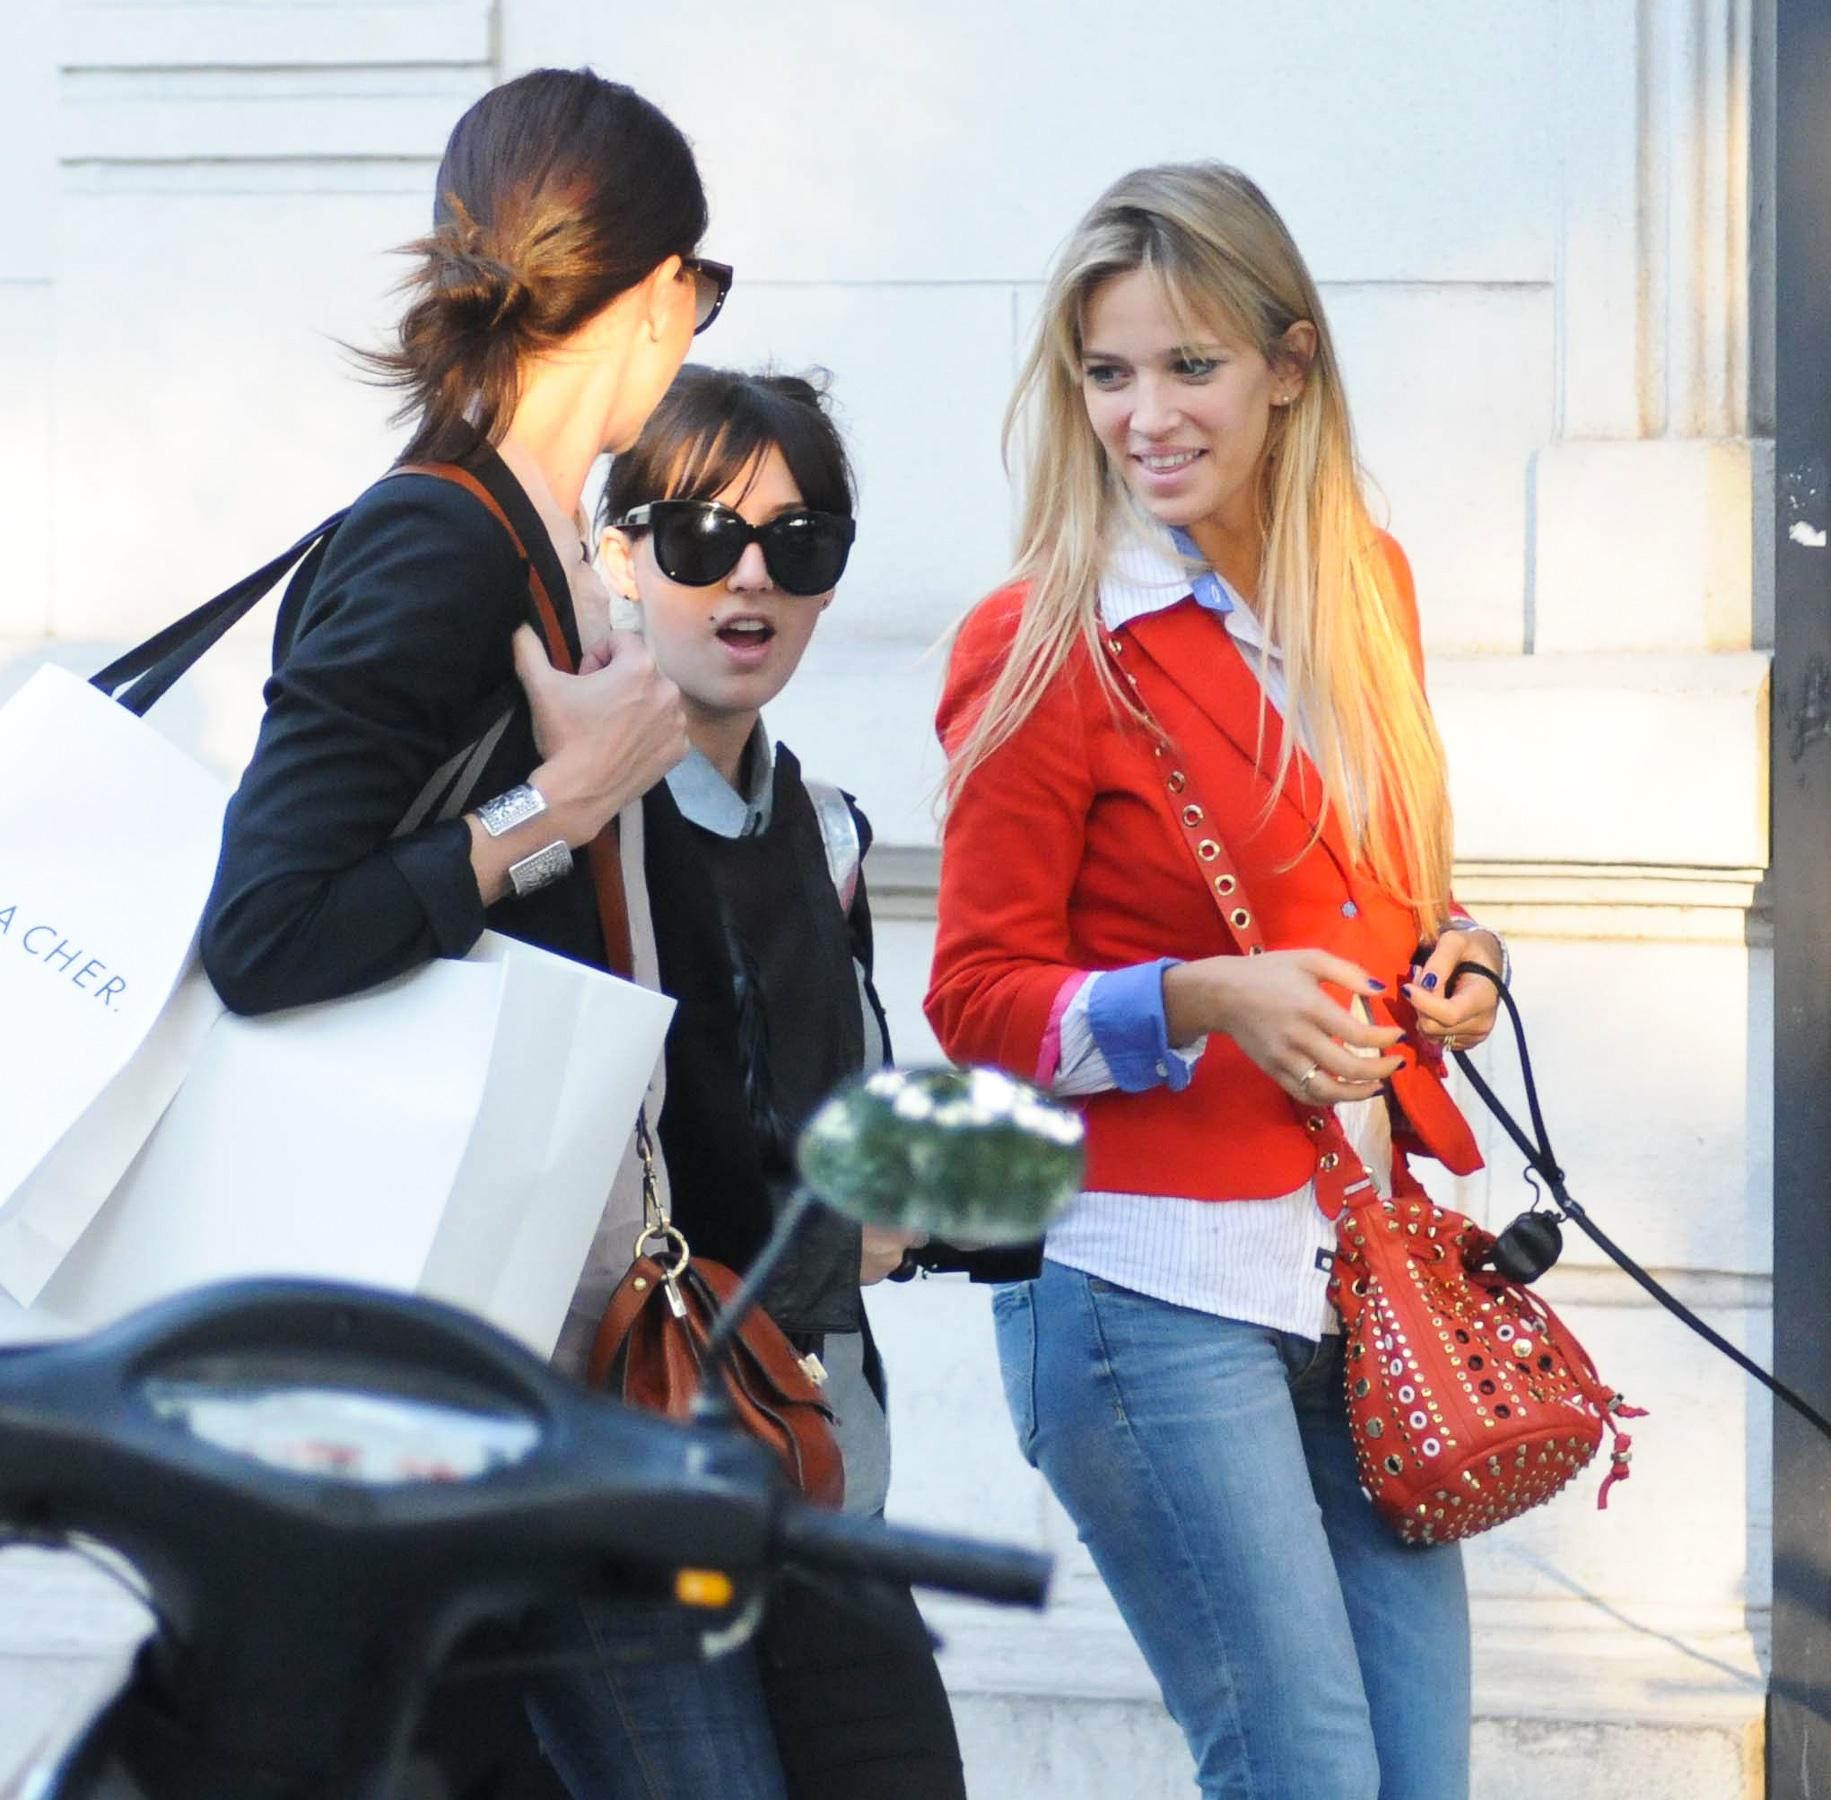 106747858_Luisana_Lopilato_Shopping_in_Buenos_Aires7_122_166lo.jpg